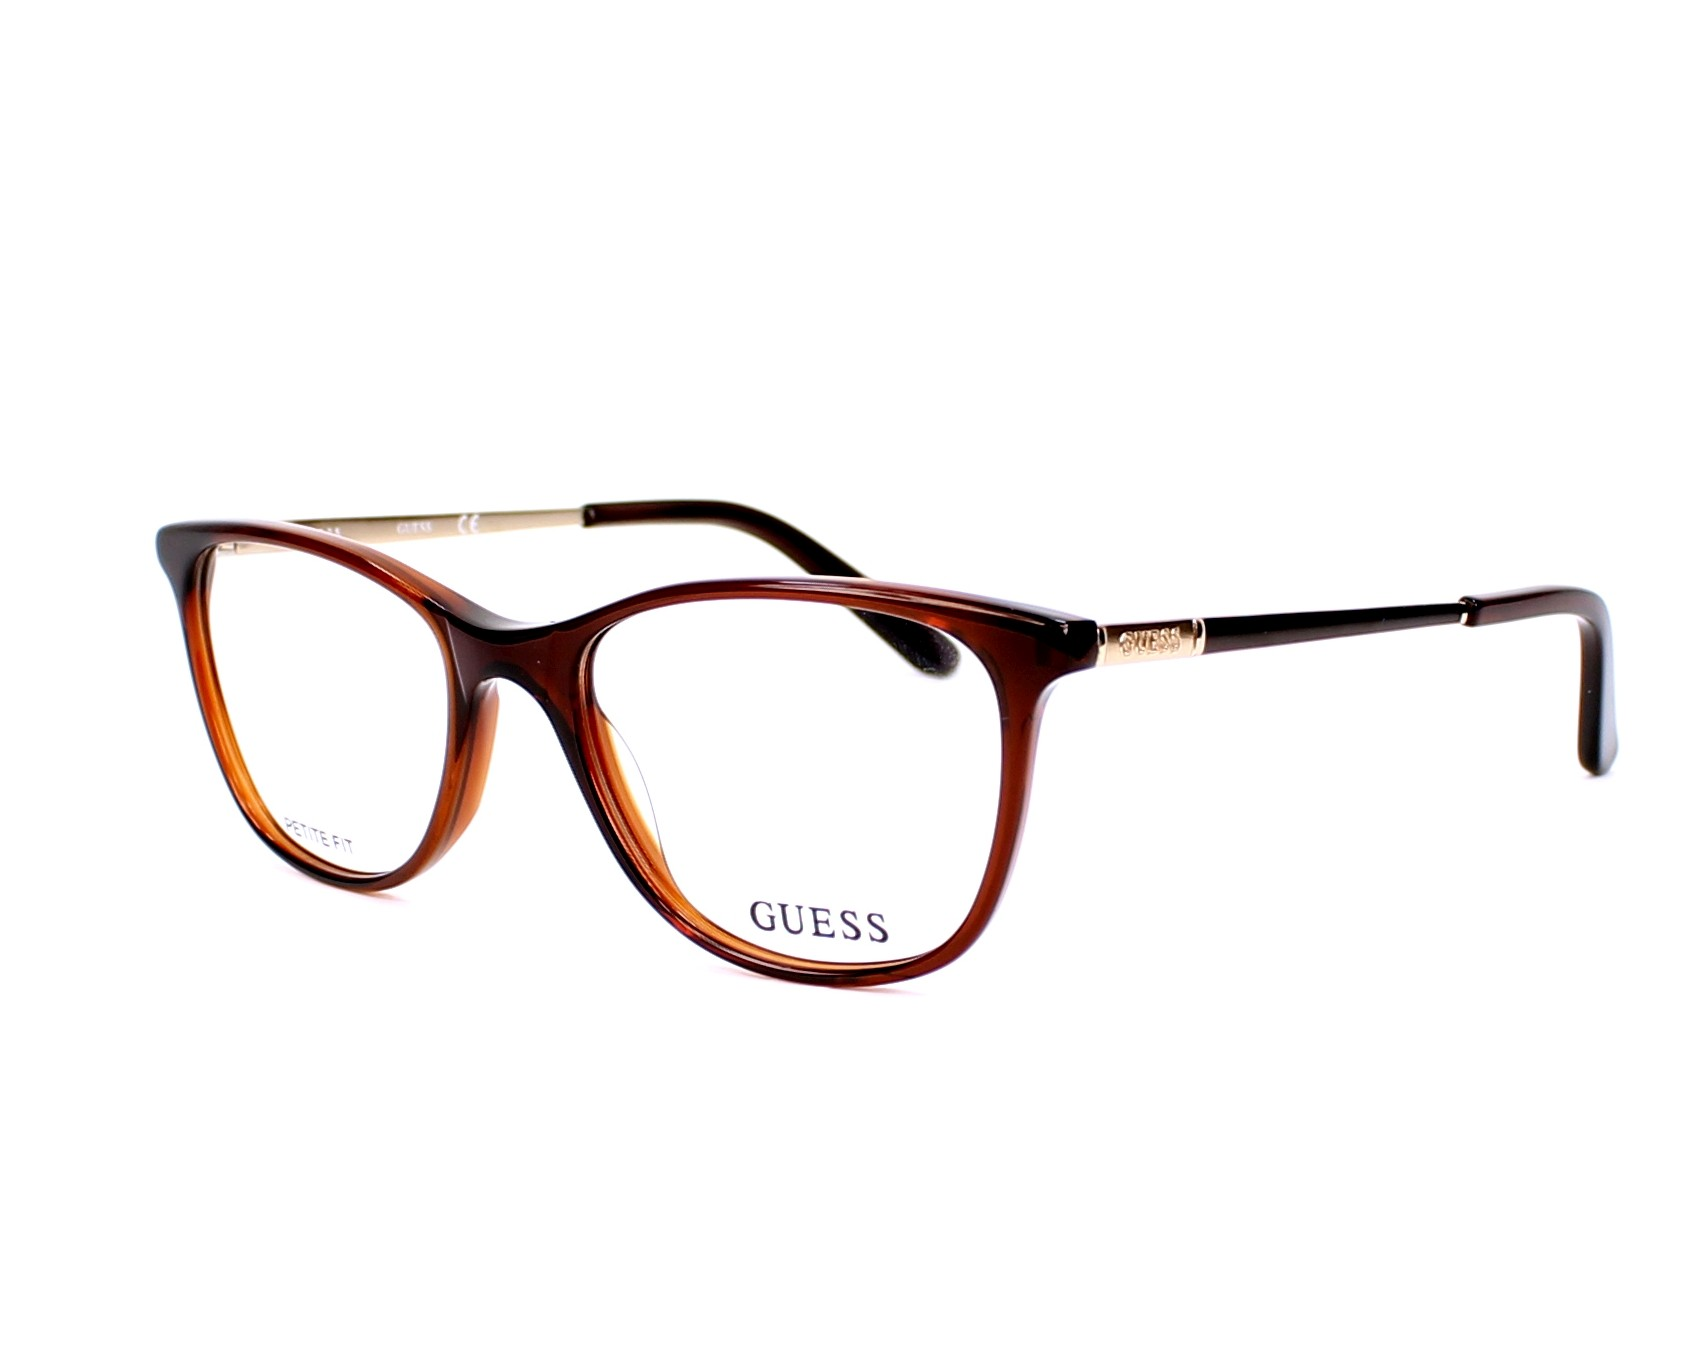 Order your Guess eyeglasses GU2566 050 49 today